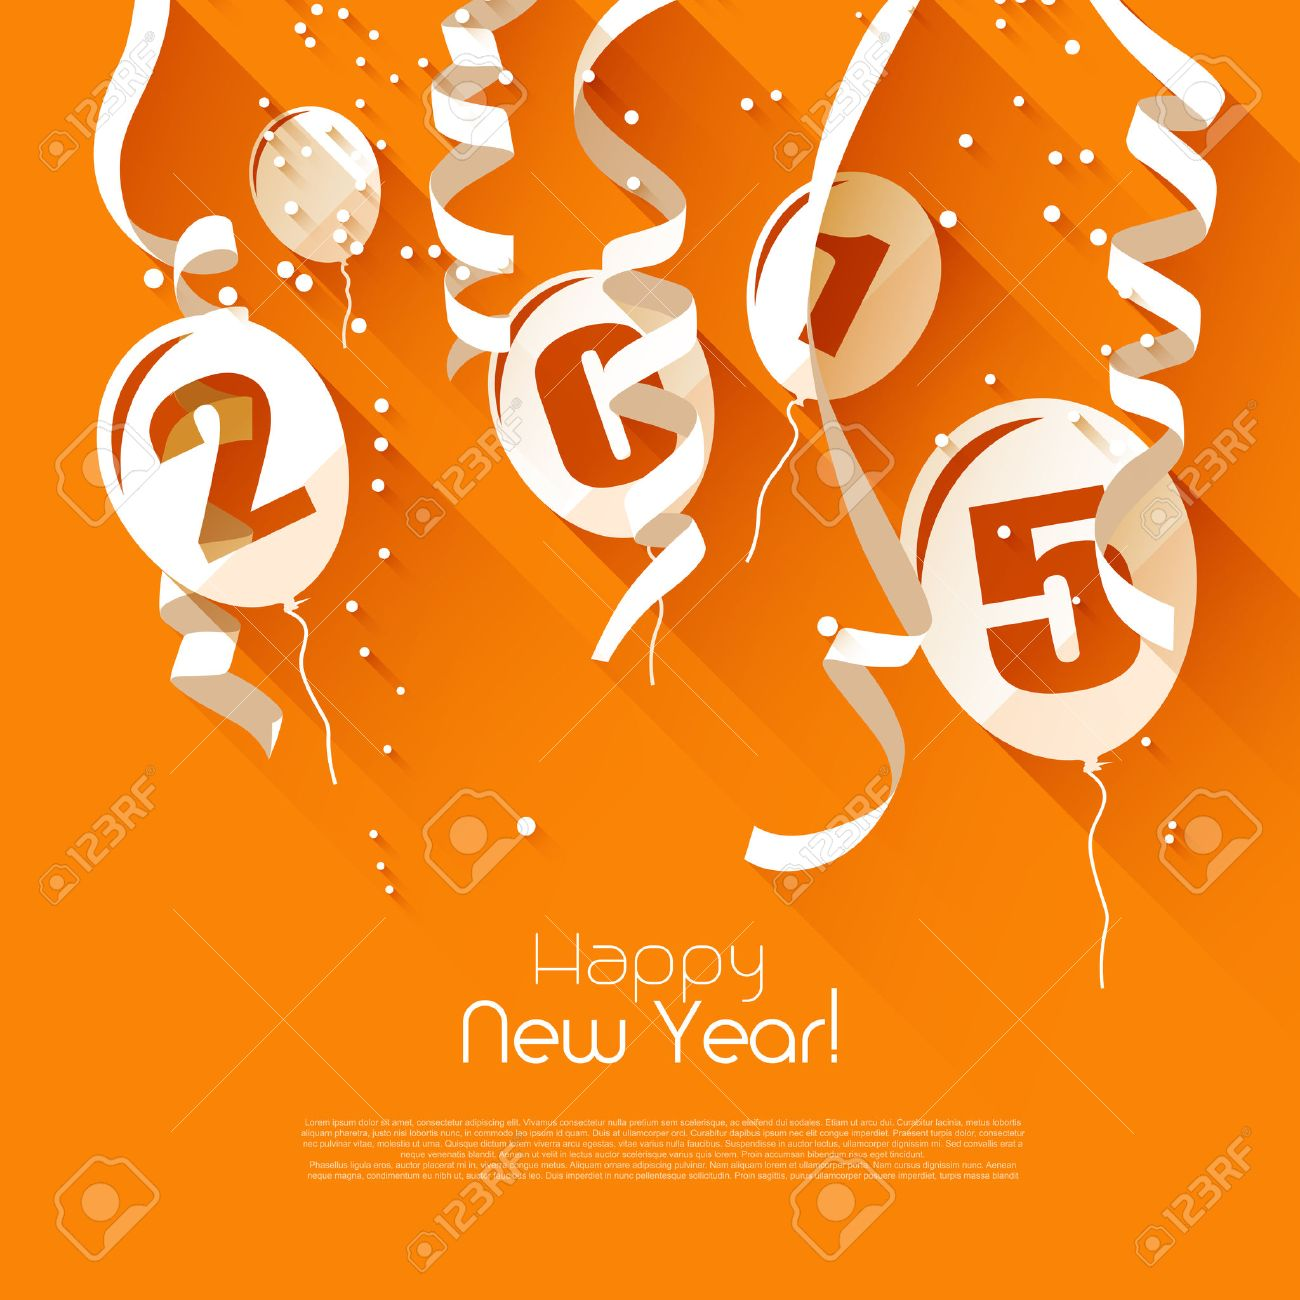 Happy new year 2015 modern greeting card in flat design style happy new year 2015 modern greeting card in flat design style stock vector 34203705 m4hsunfo